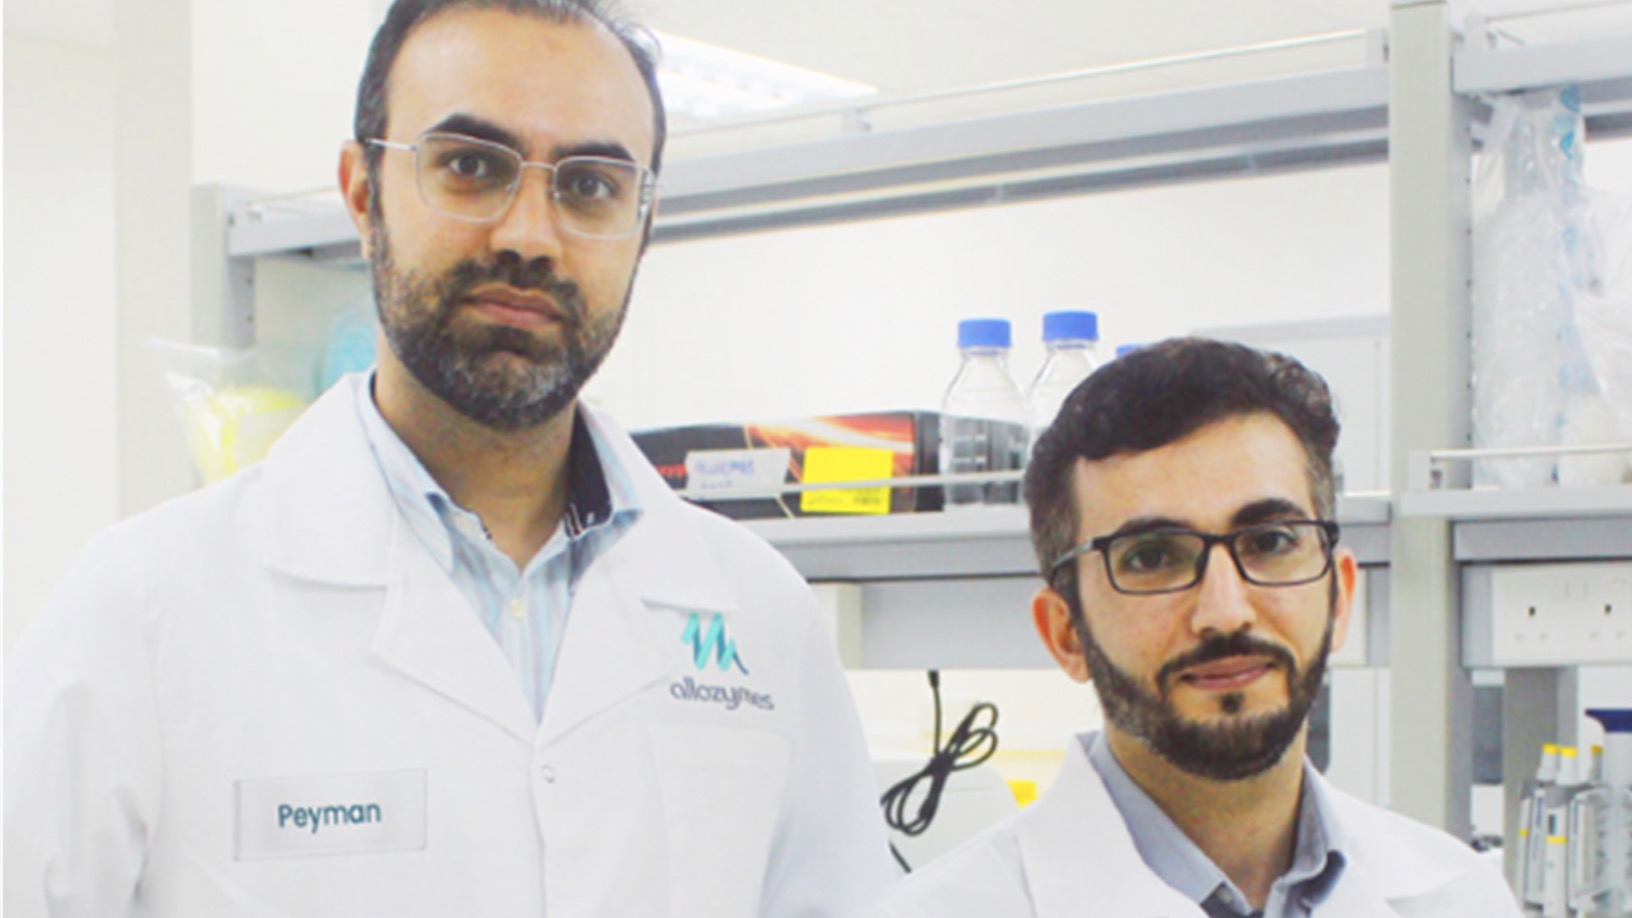 Allozymes wants to supercharge manufacturing with engineered enzymes